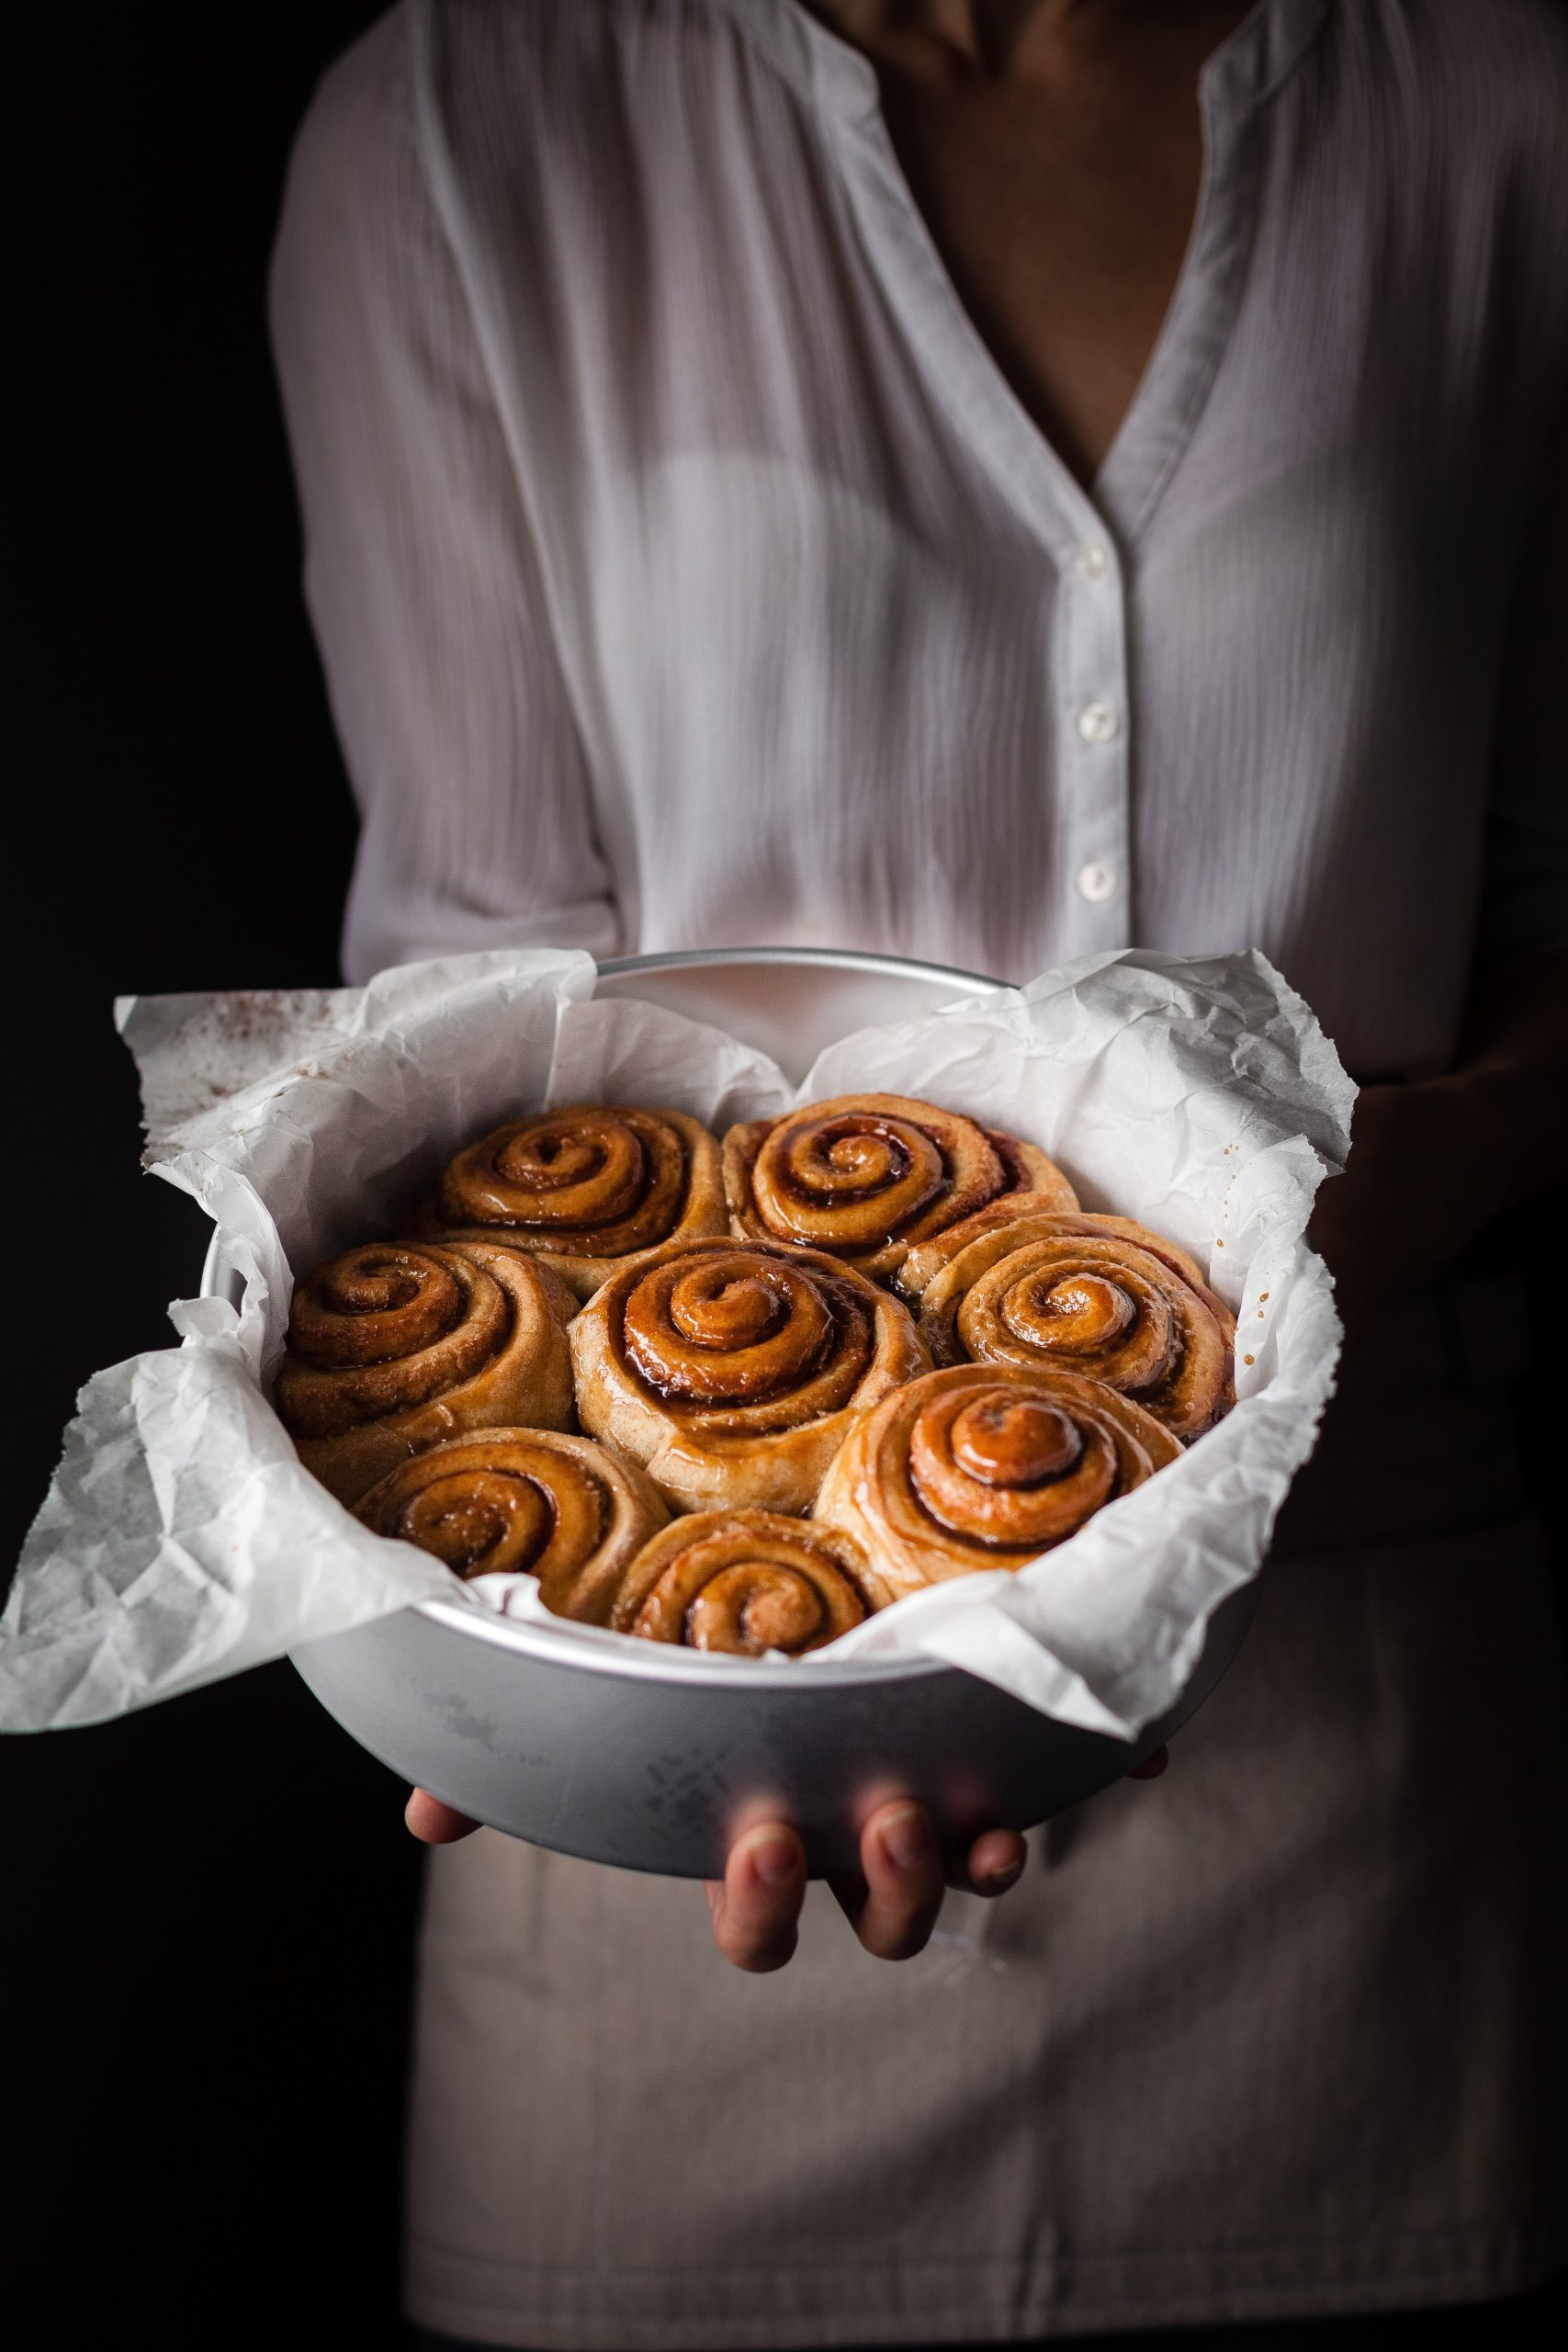 a head on shot of a baker holding a pan of cinnamon rolls.